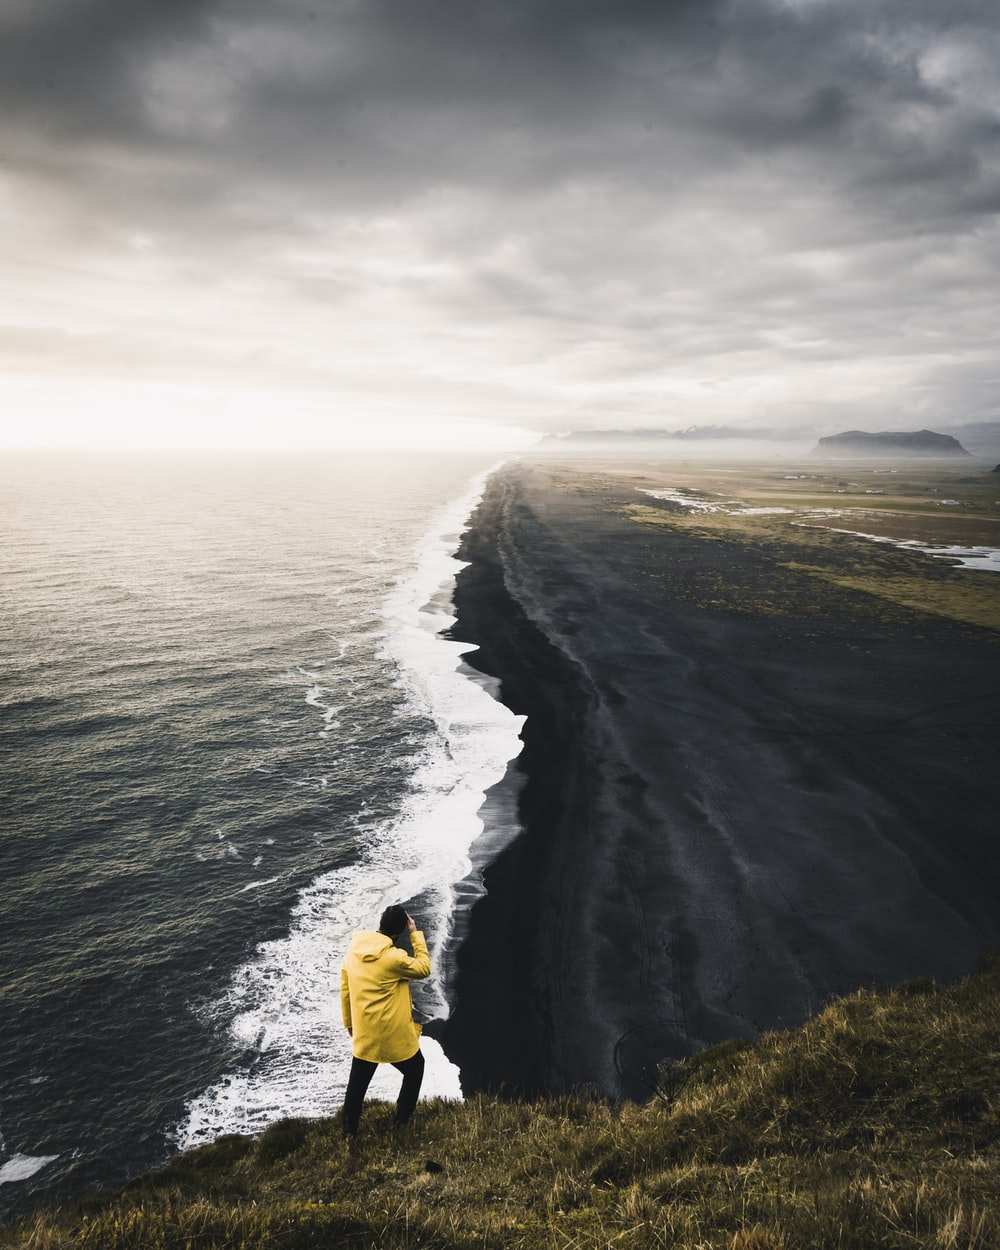 man on top hill near body of water